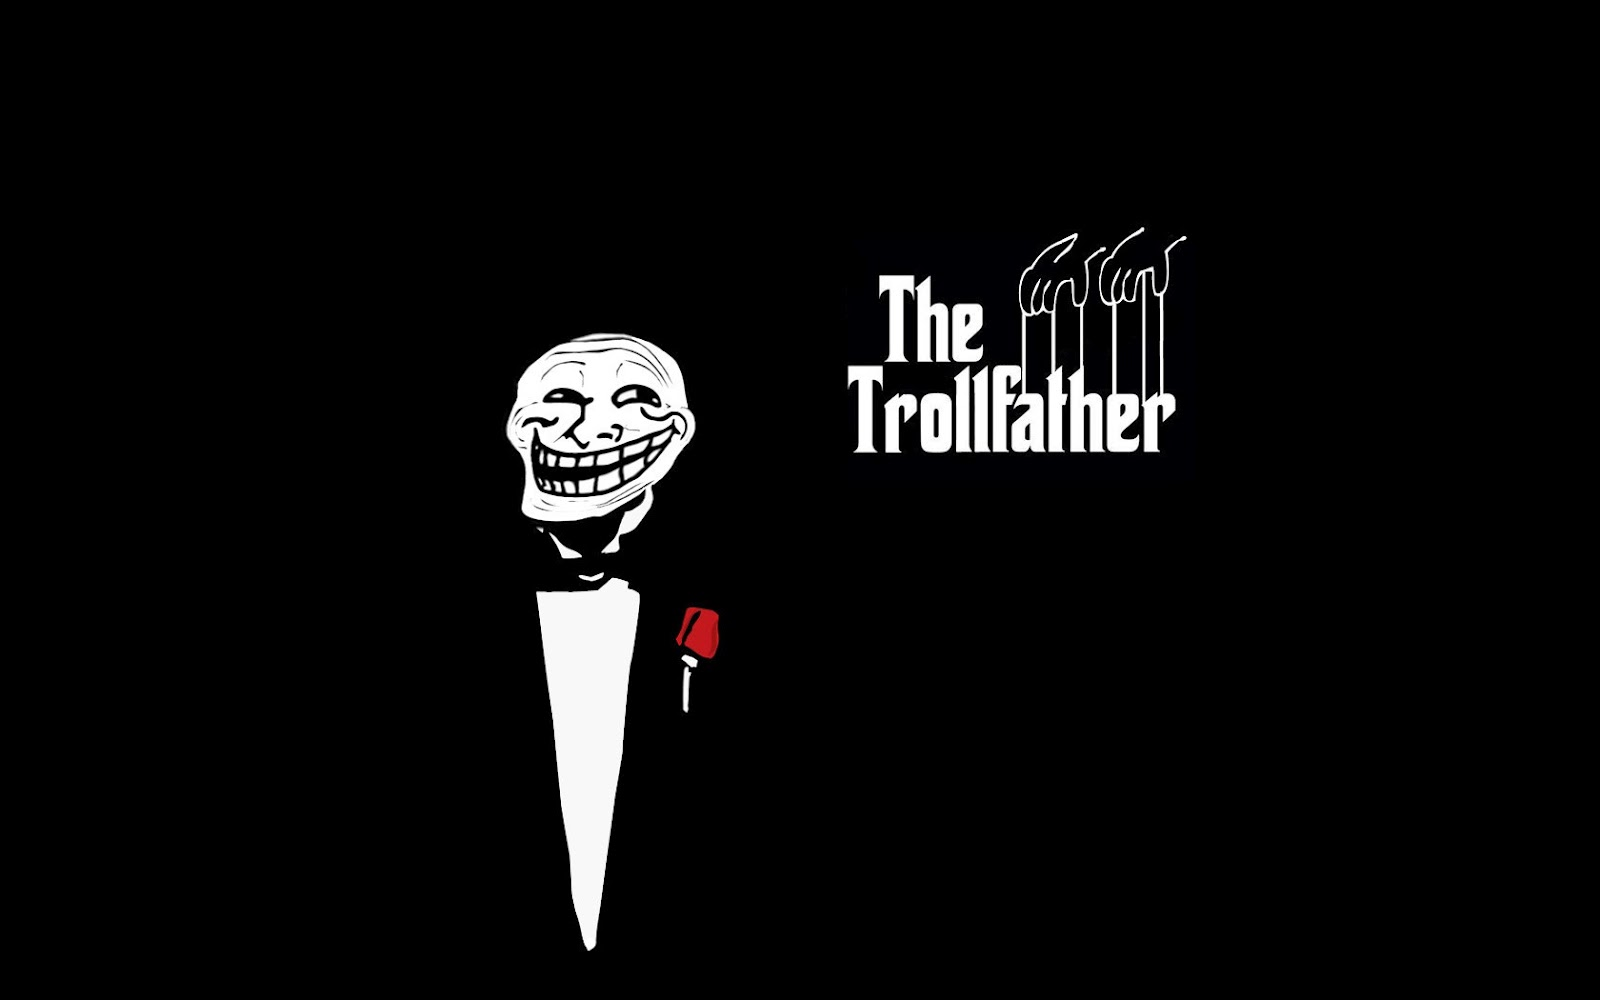 Funny Trollface Meme HD Wallpapers Download Wallpapers in HD for 1600x1000